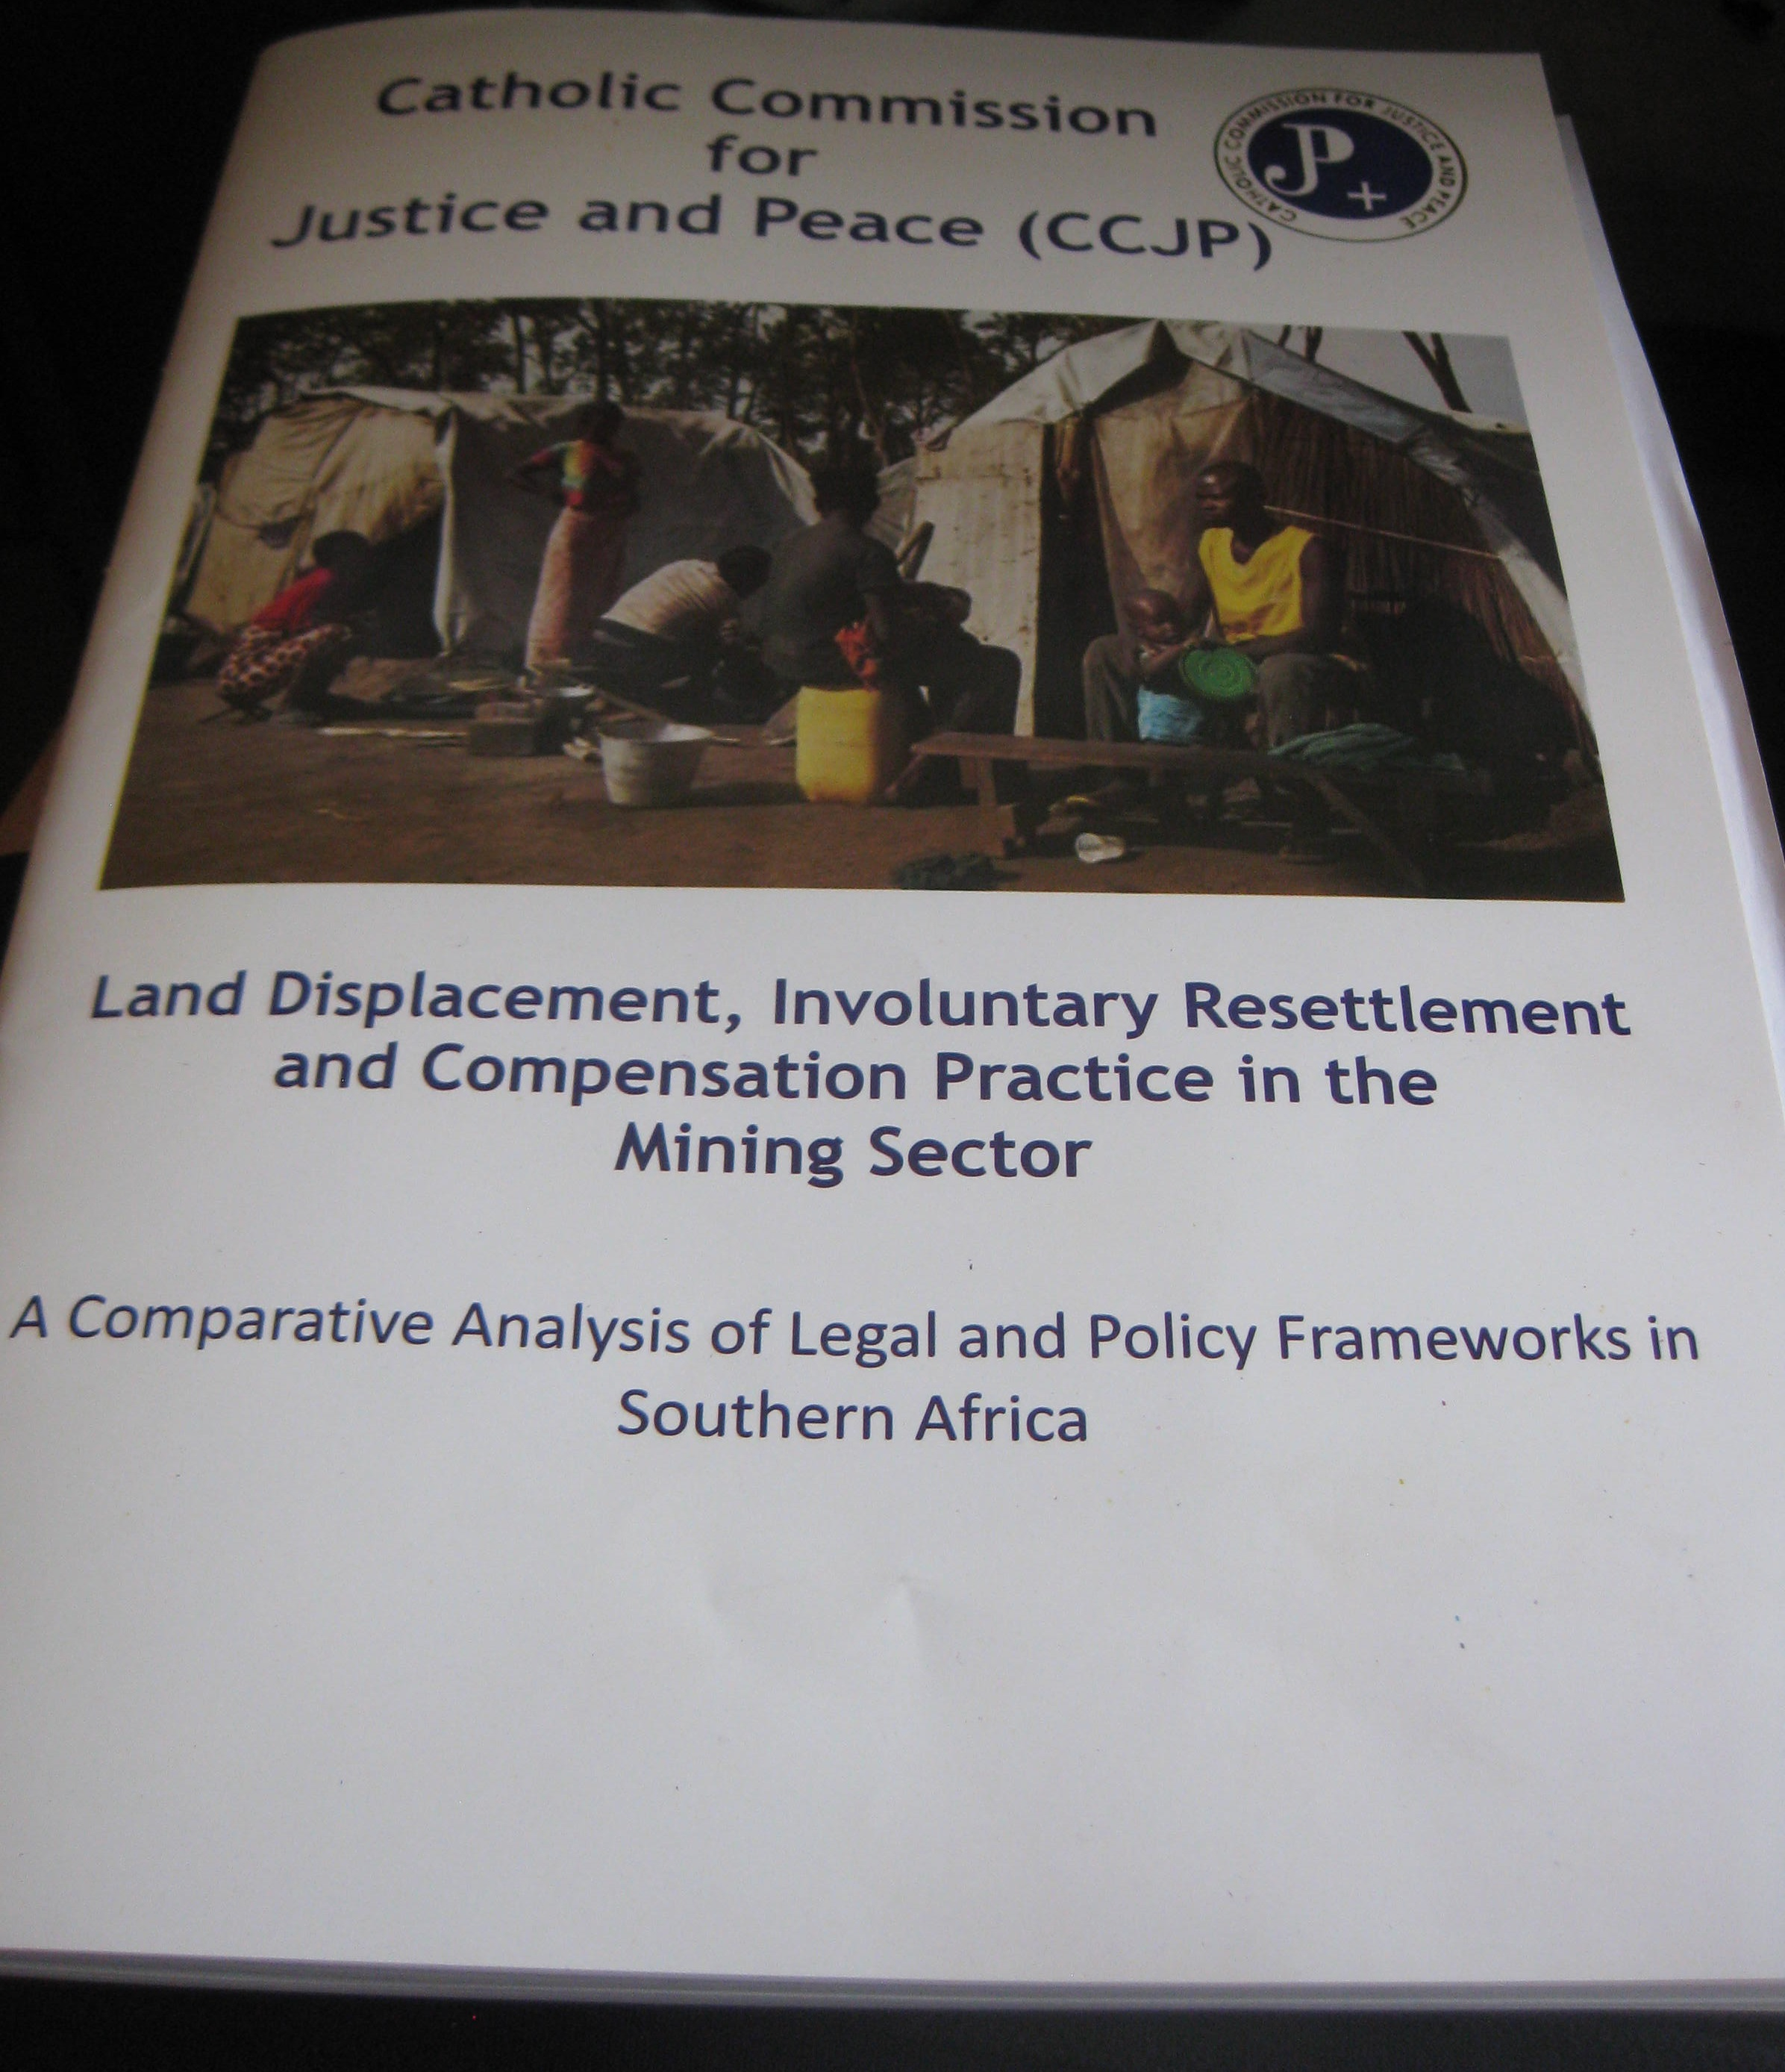 """Catholic Commission for Justice and Peace launch report - """"Land Displacement, Involuntary Resettlement and Compensation Practice in the Mining Sector: A Comparative Analysis of Legal and Policy Frameworks in Southern Africa"""""""